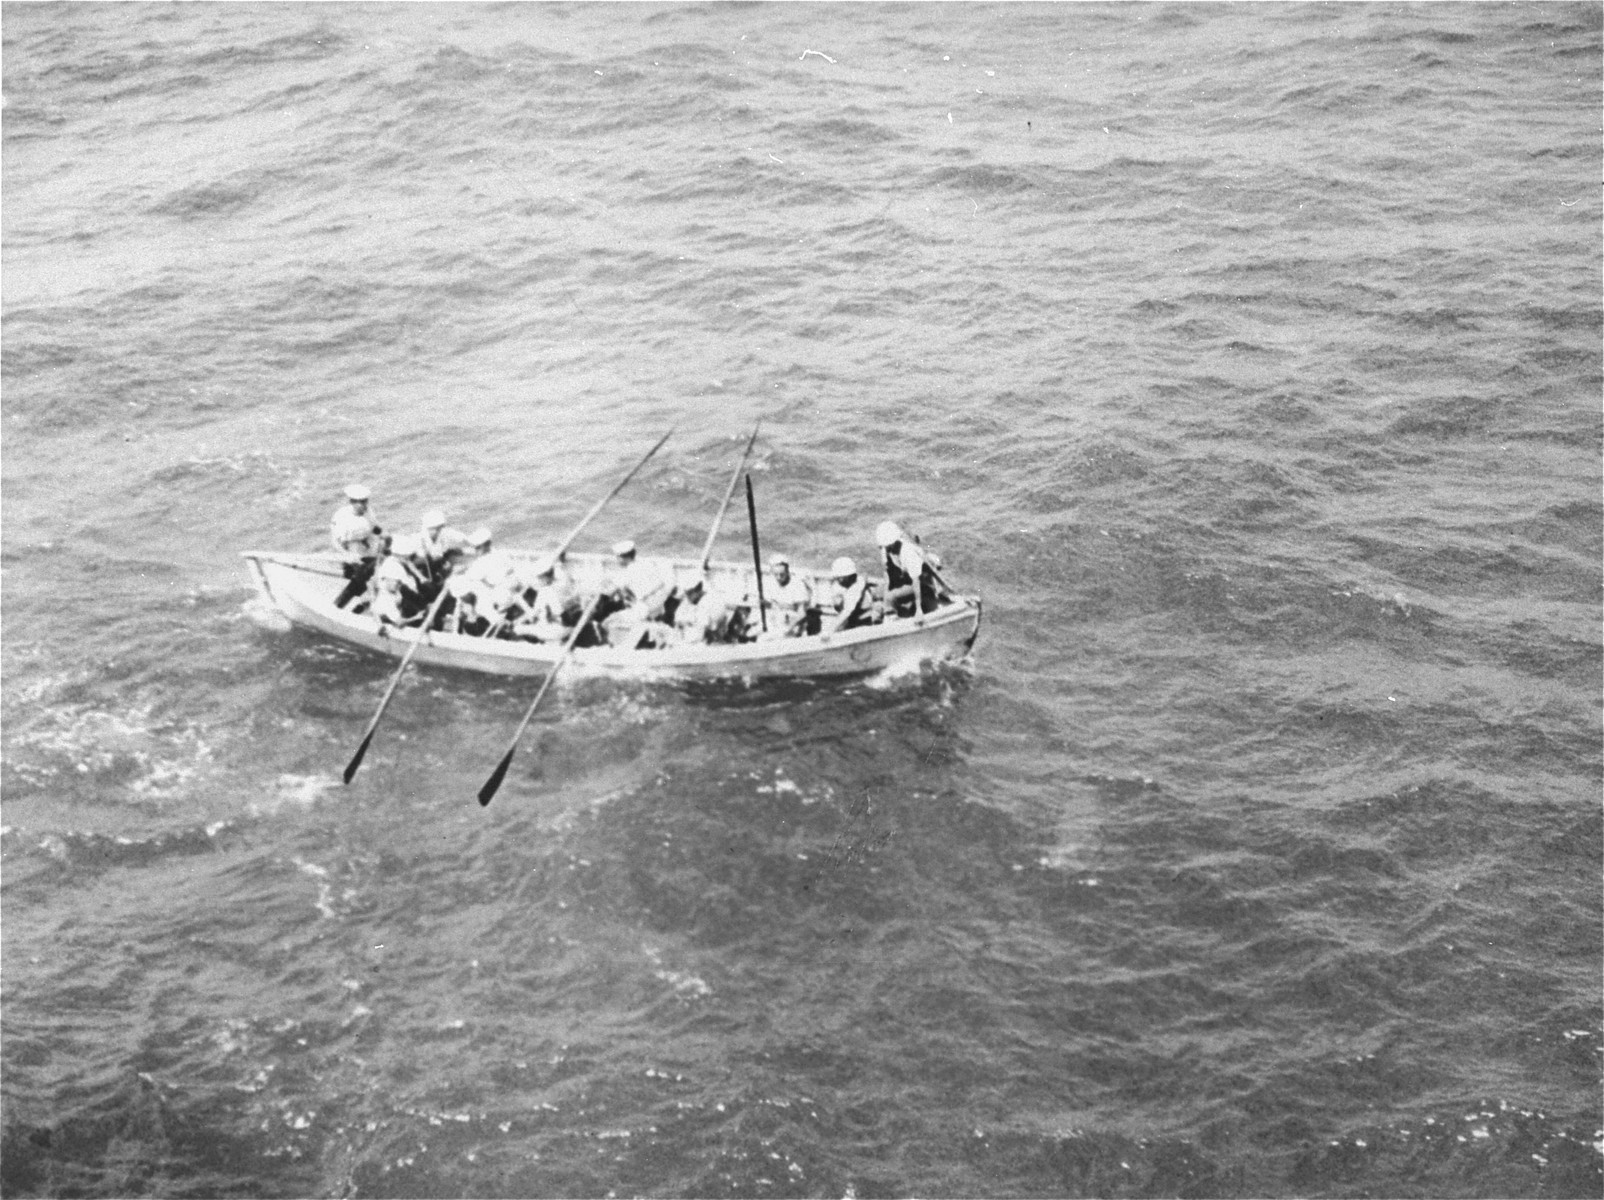 A boarding party from the British destroyer, H.M.S. Ajax, approaches the Exodus 1947.